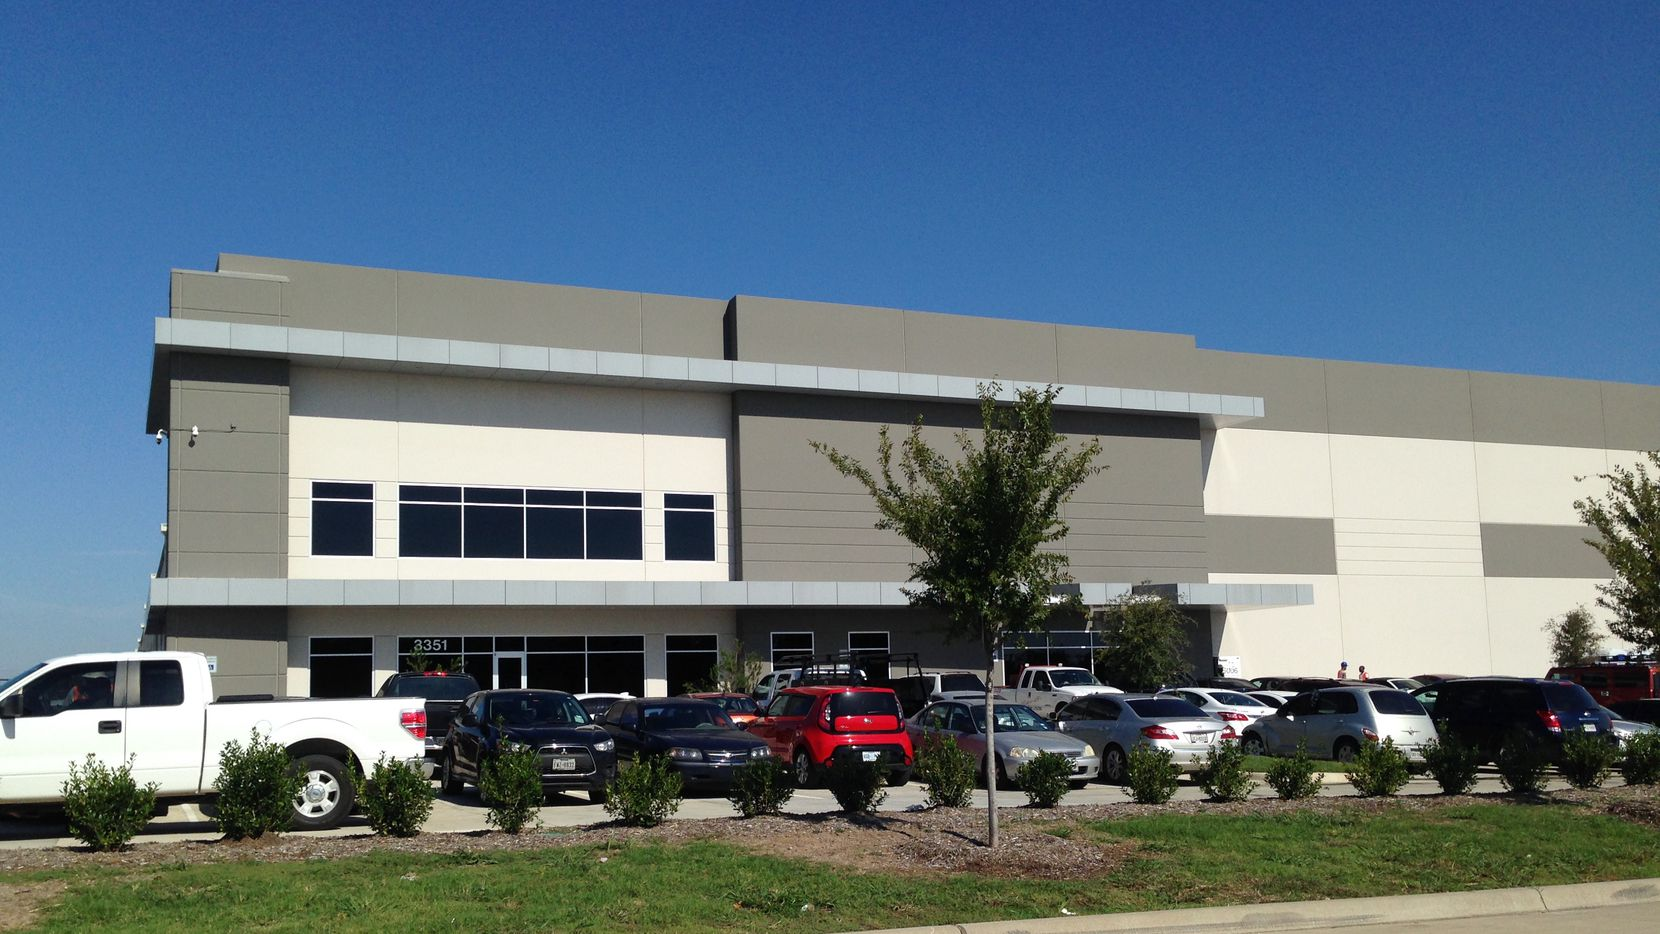 Amazon has rented space for a large fulfillment center in the DalParc Logistics Center.